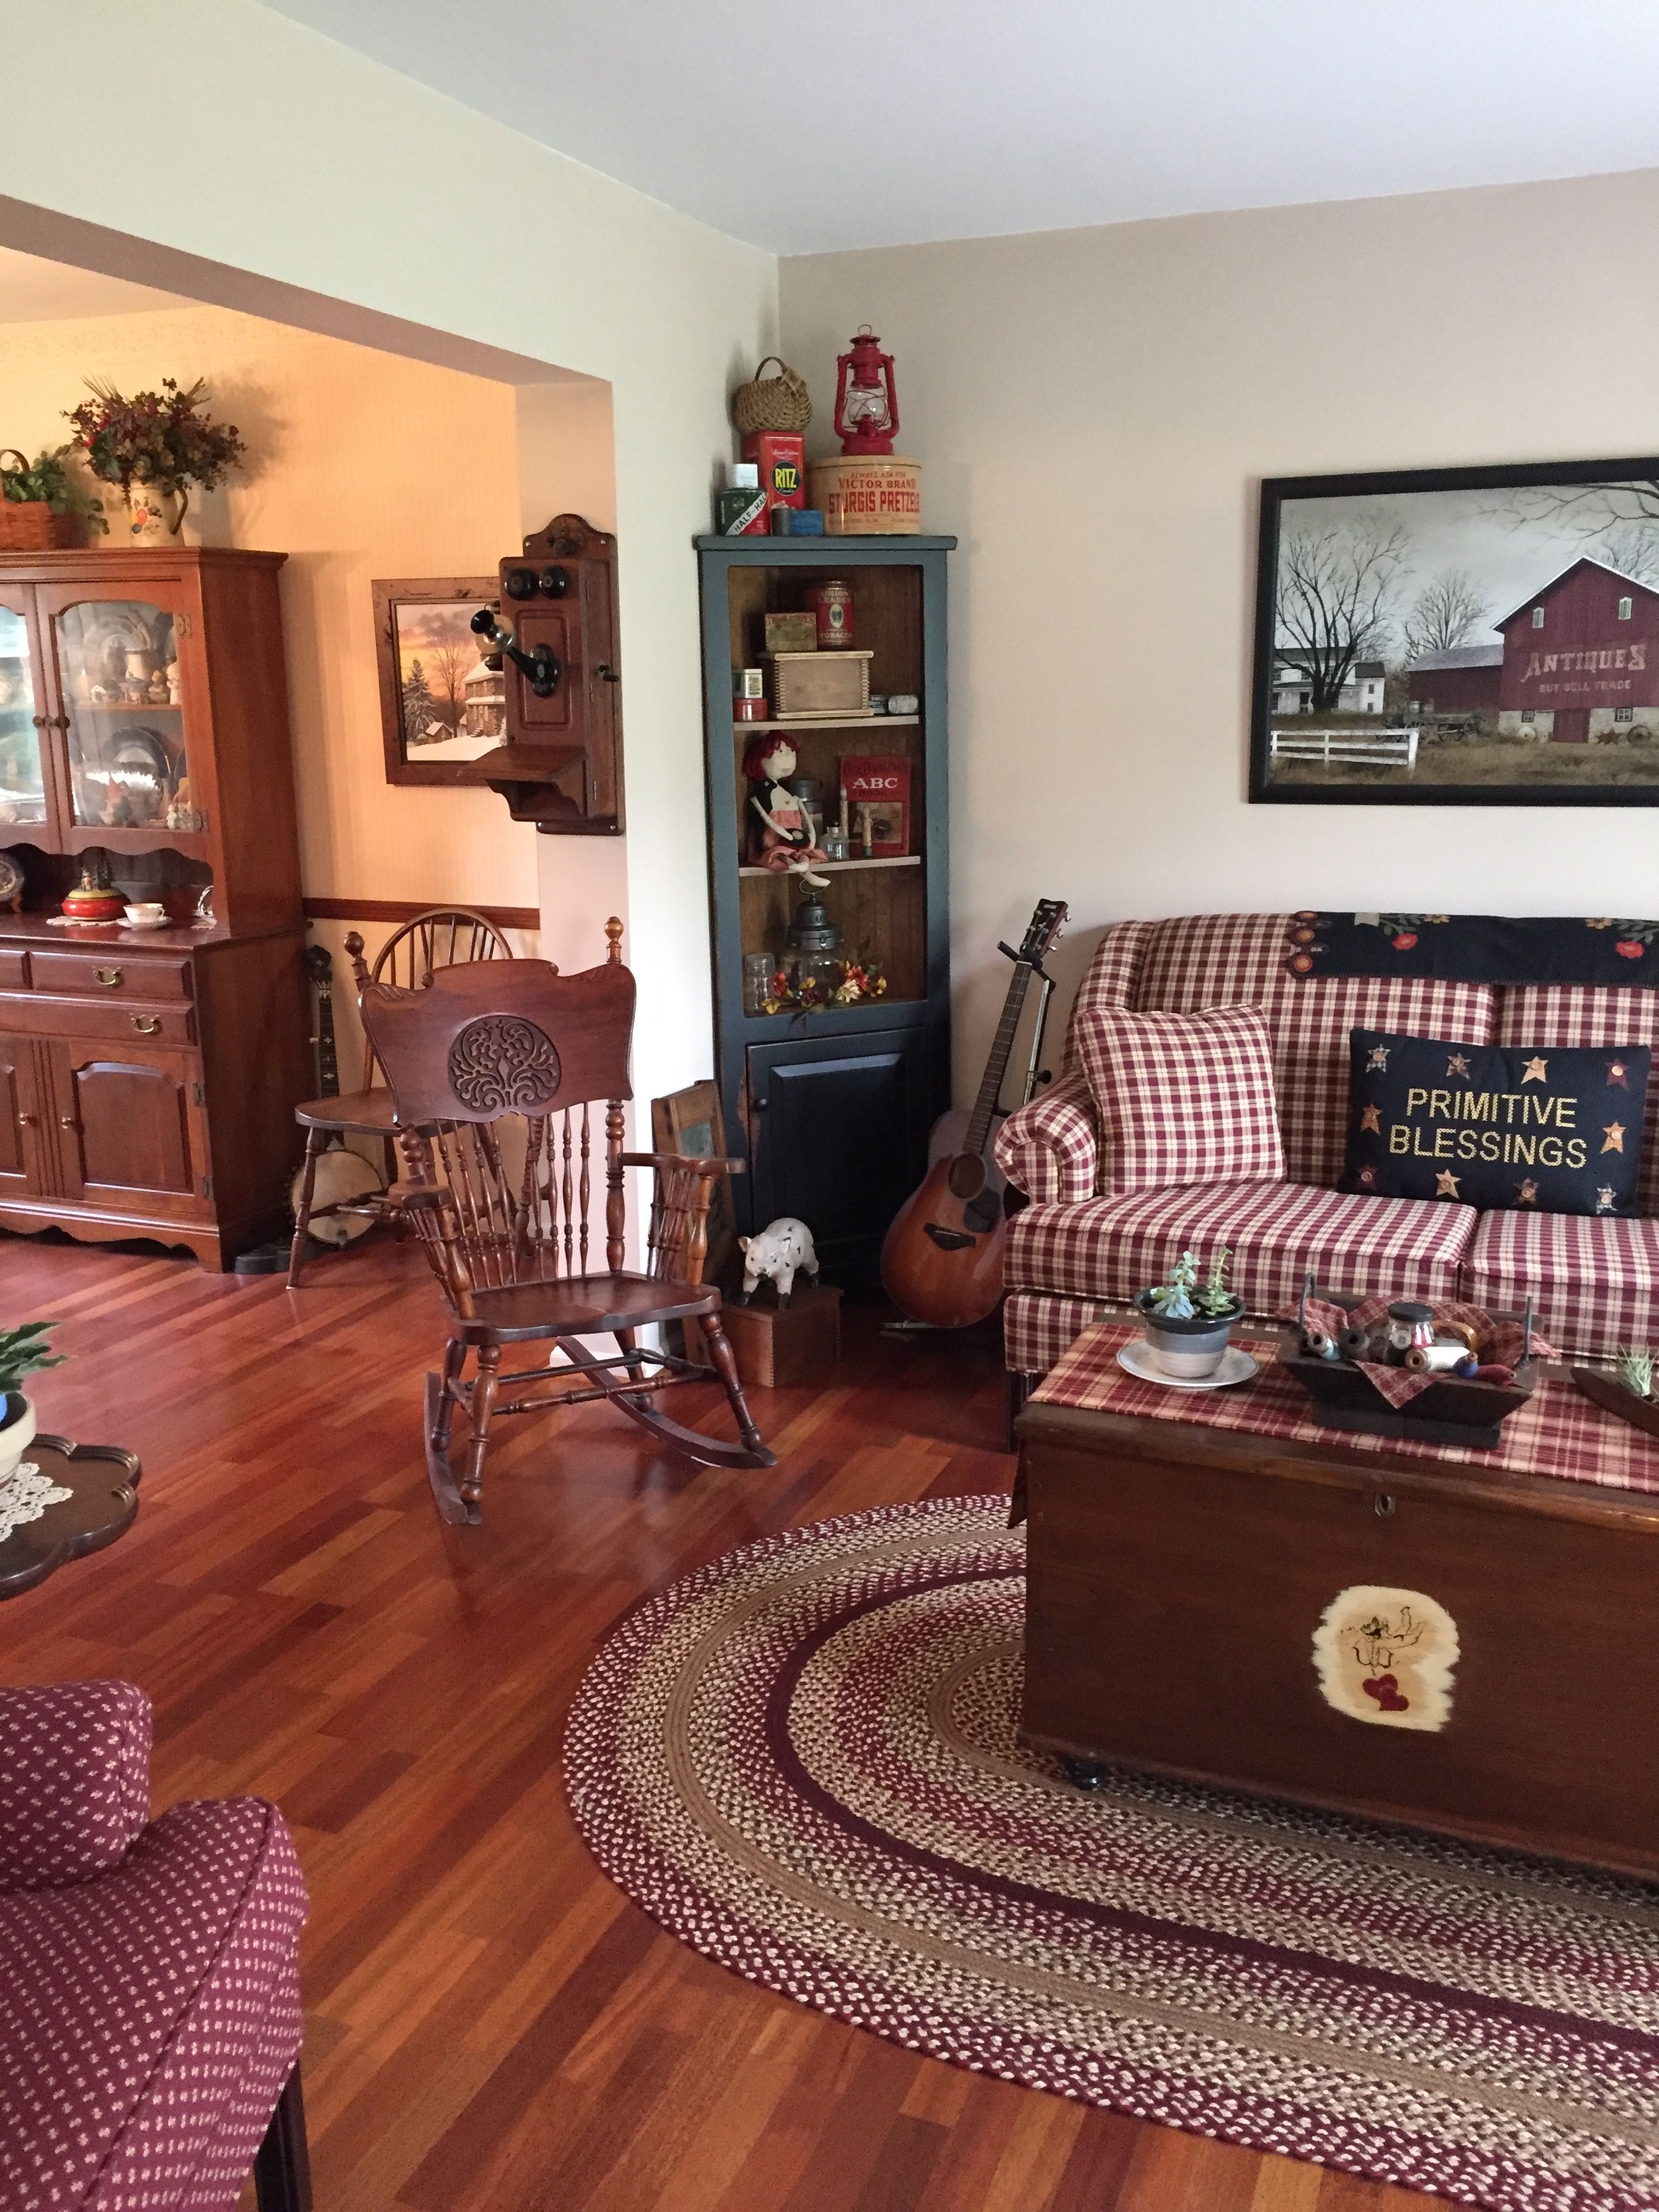 Primitive Living Room Primitive Living Room Primitive Decorating Country Americana Living Rooms